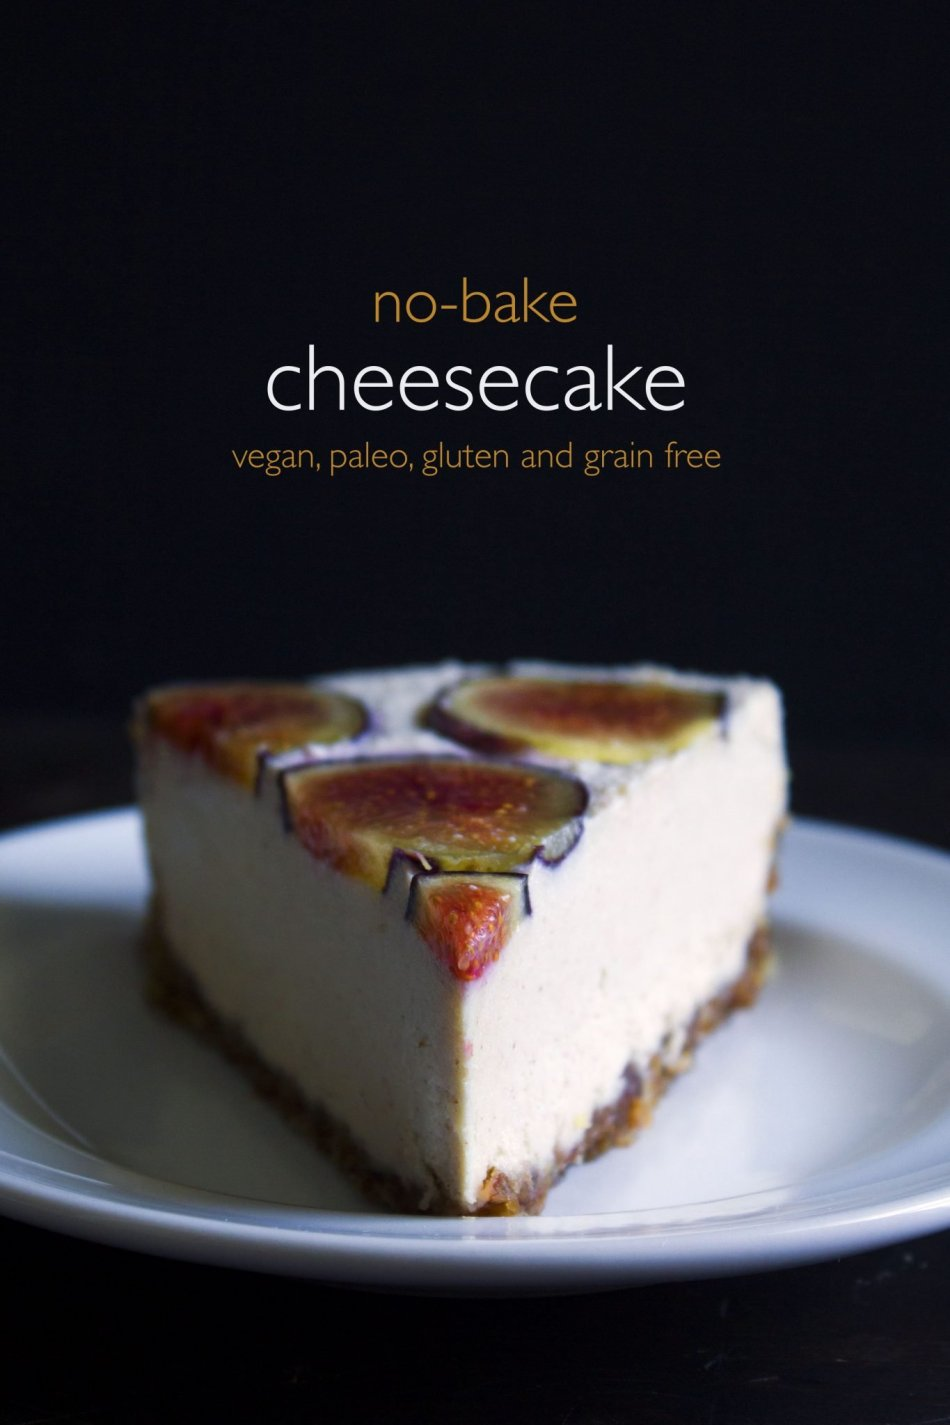 Vegan No-Bake Cheesecake With Fresh Fruit | Paleo and free of gluten, grain, dairy, and eggs!